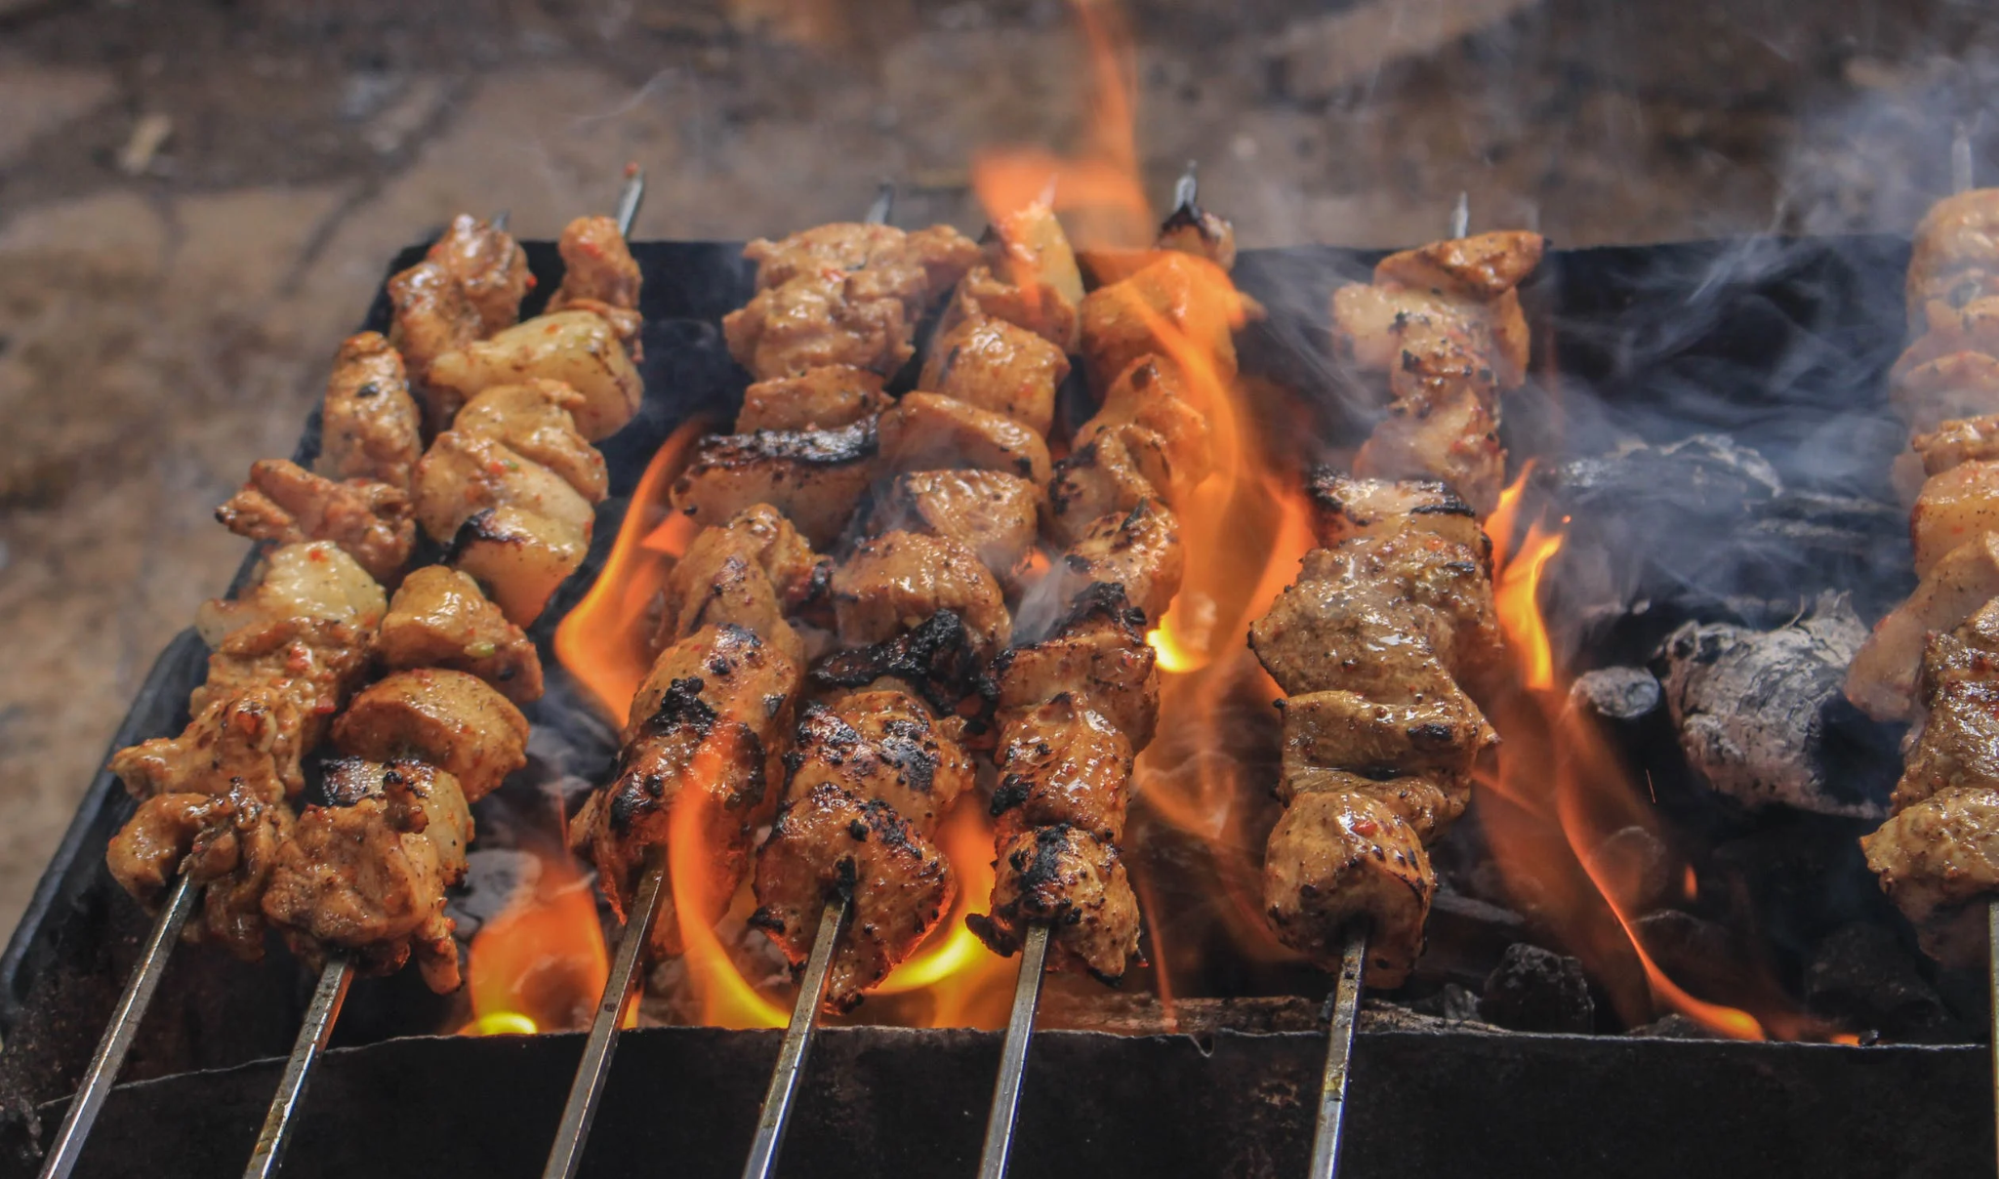 The Complete Fire Pit Grill Buying Guide, Plus Expert Grilling Tips